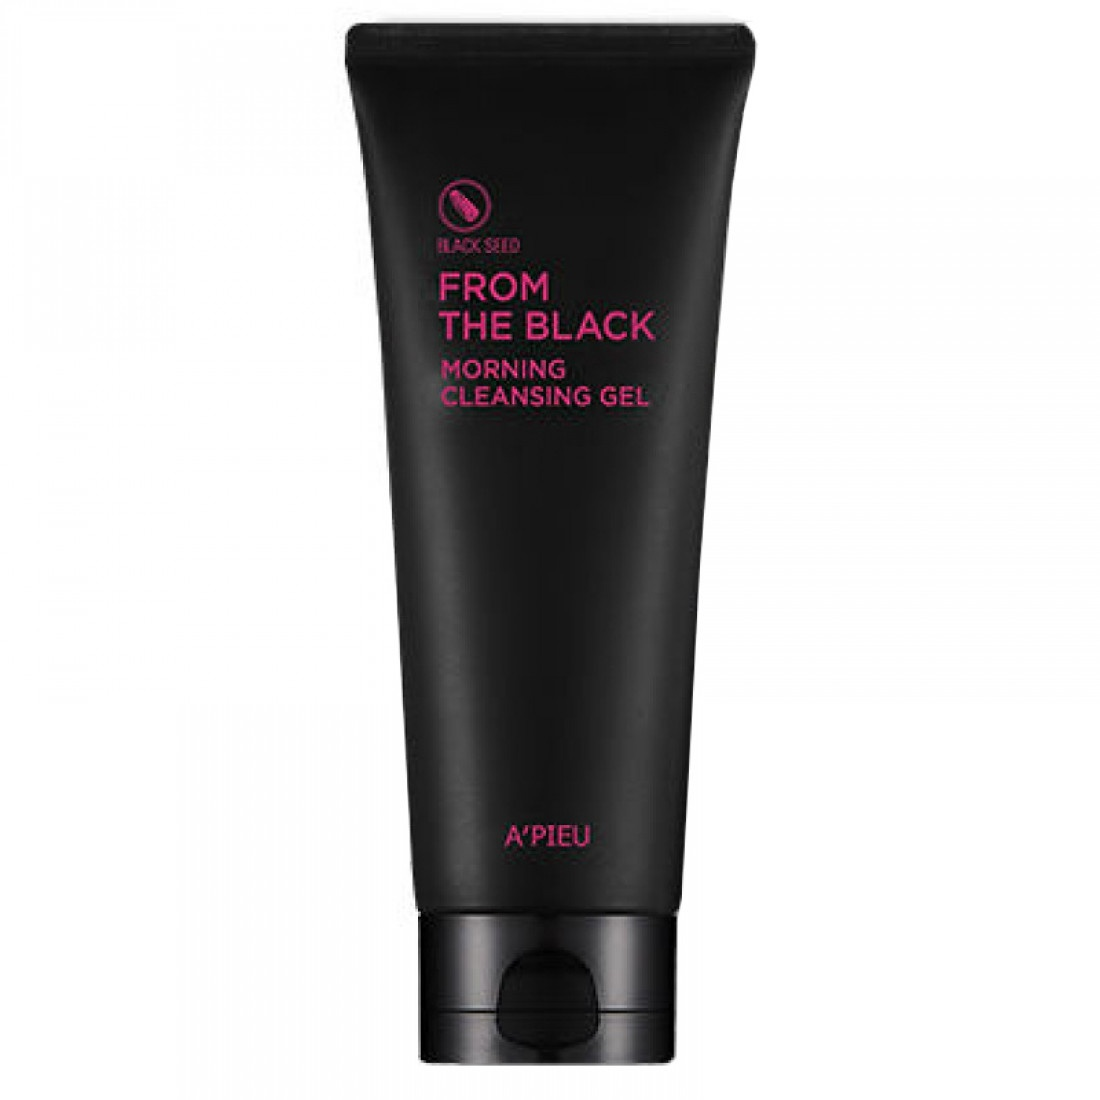 A'pieu From The Black Morning Cleansing Gel